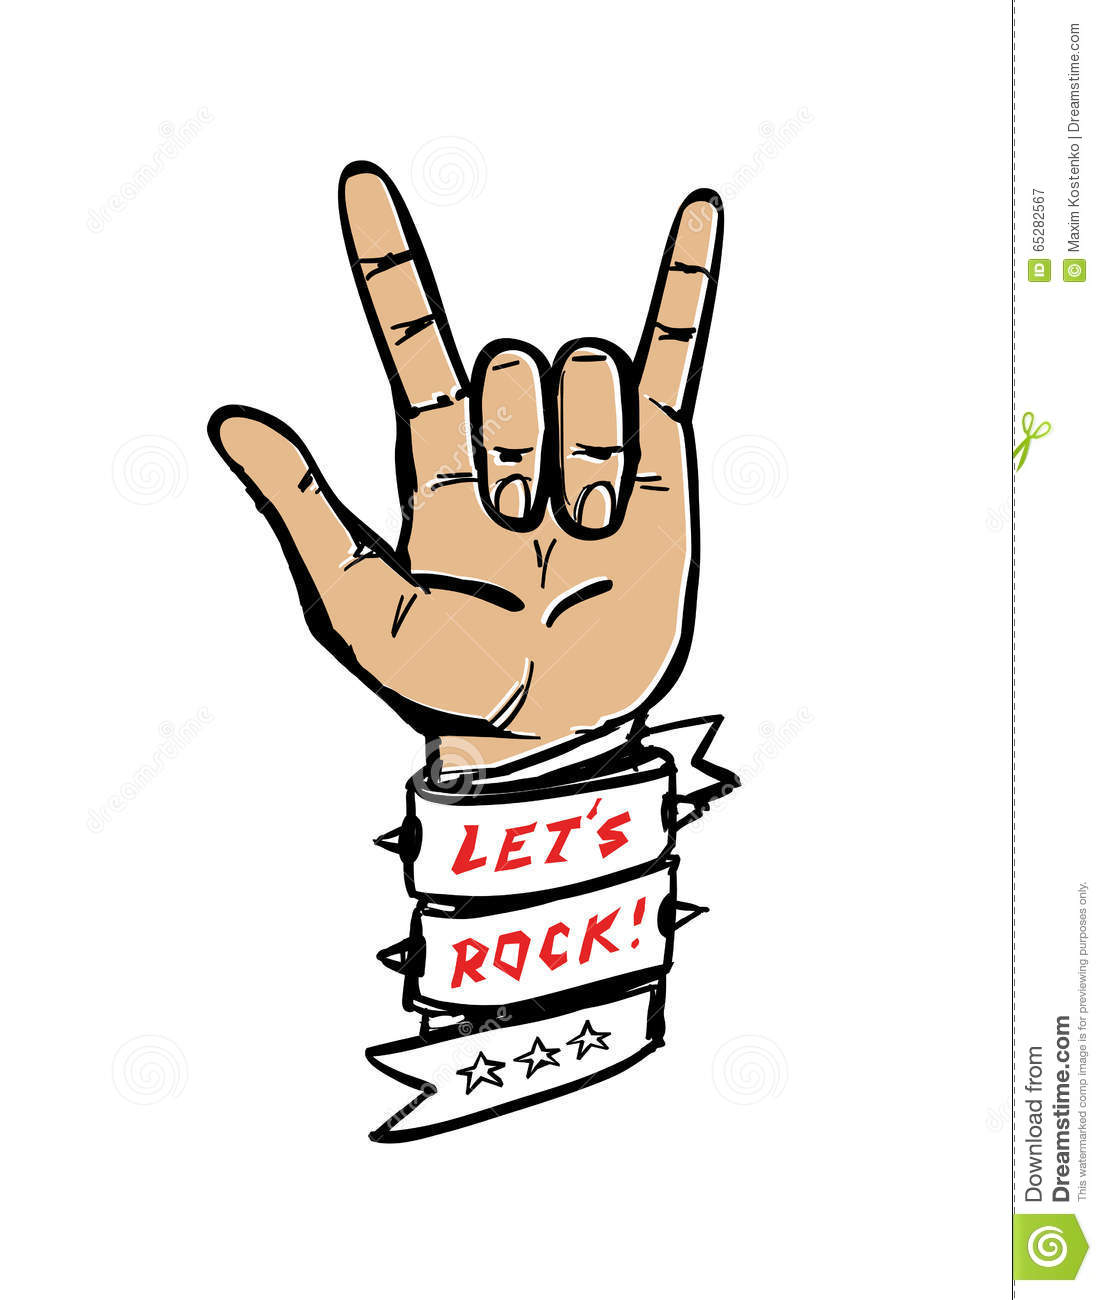 Vector Hand Rock Illustration Stock Vector - Image: 65282567